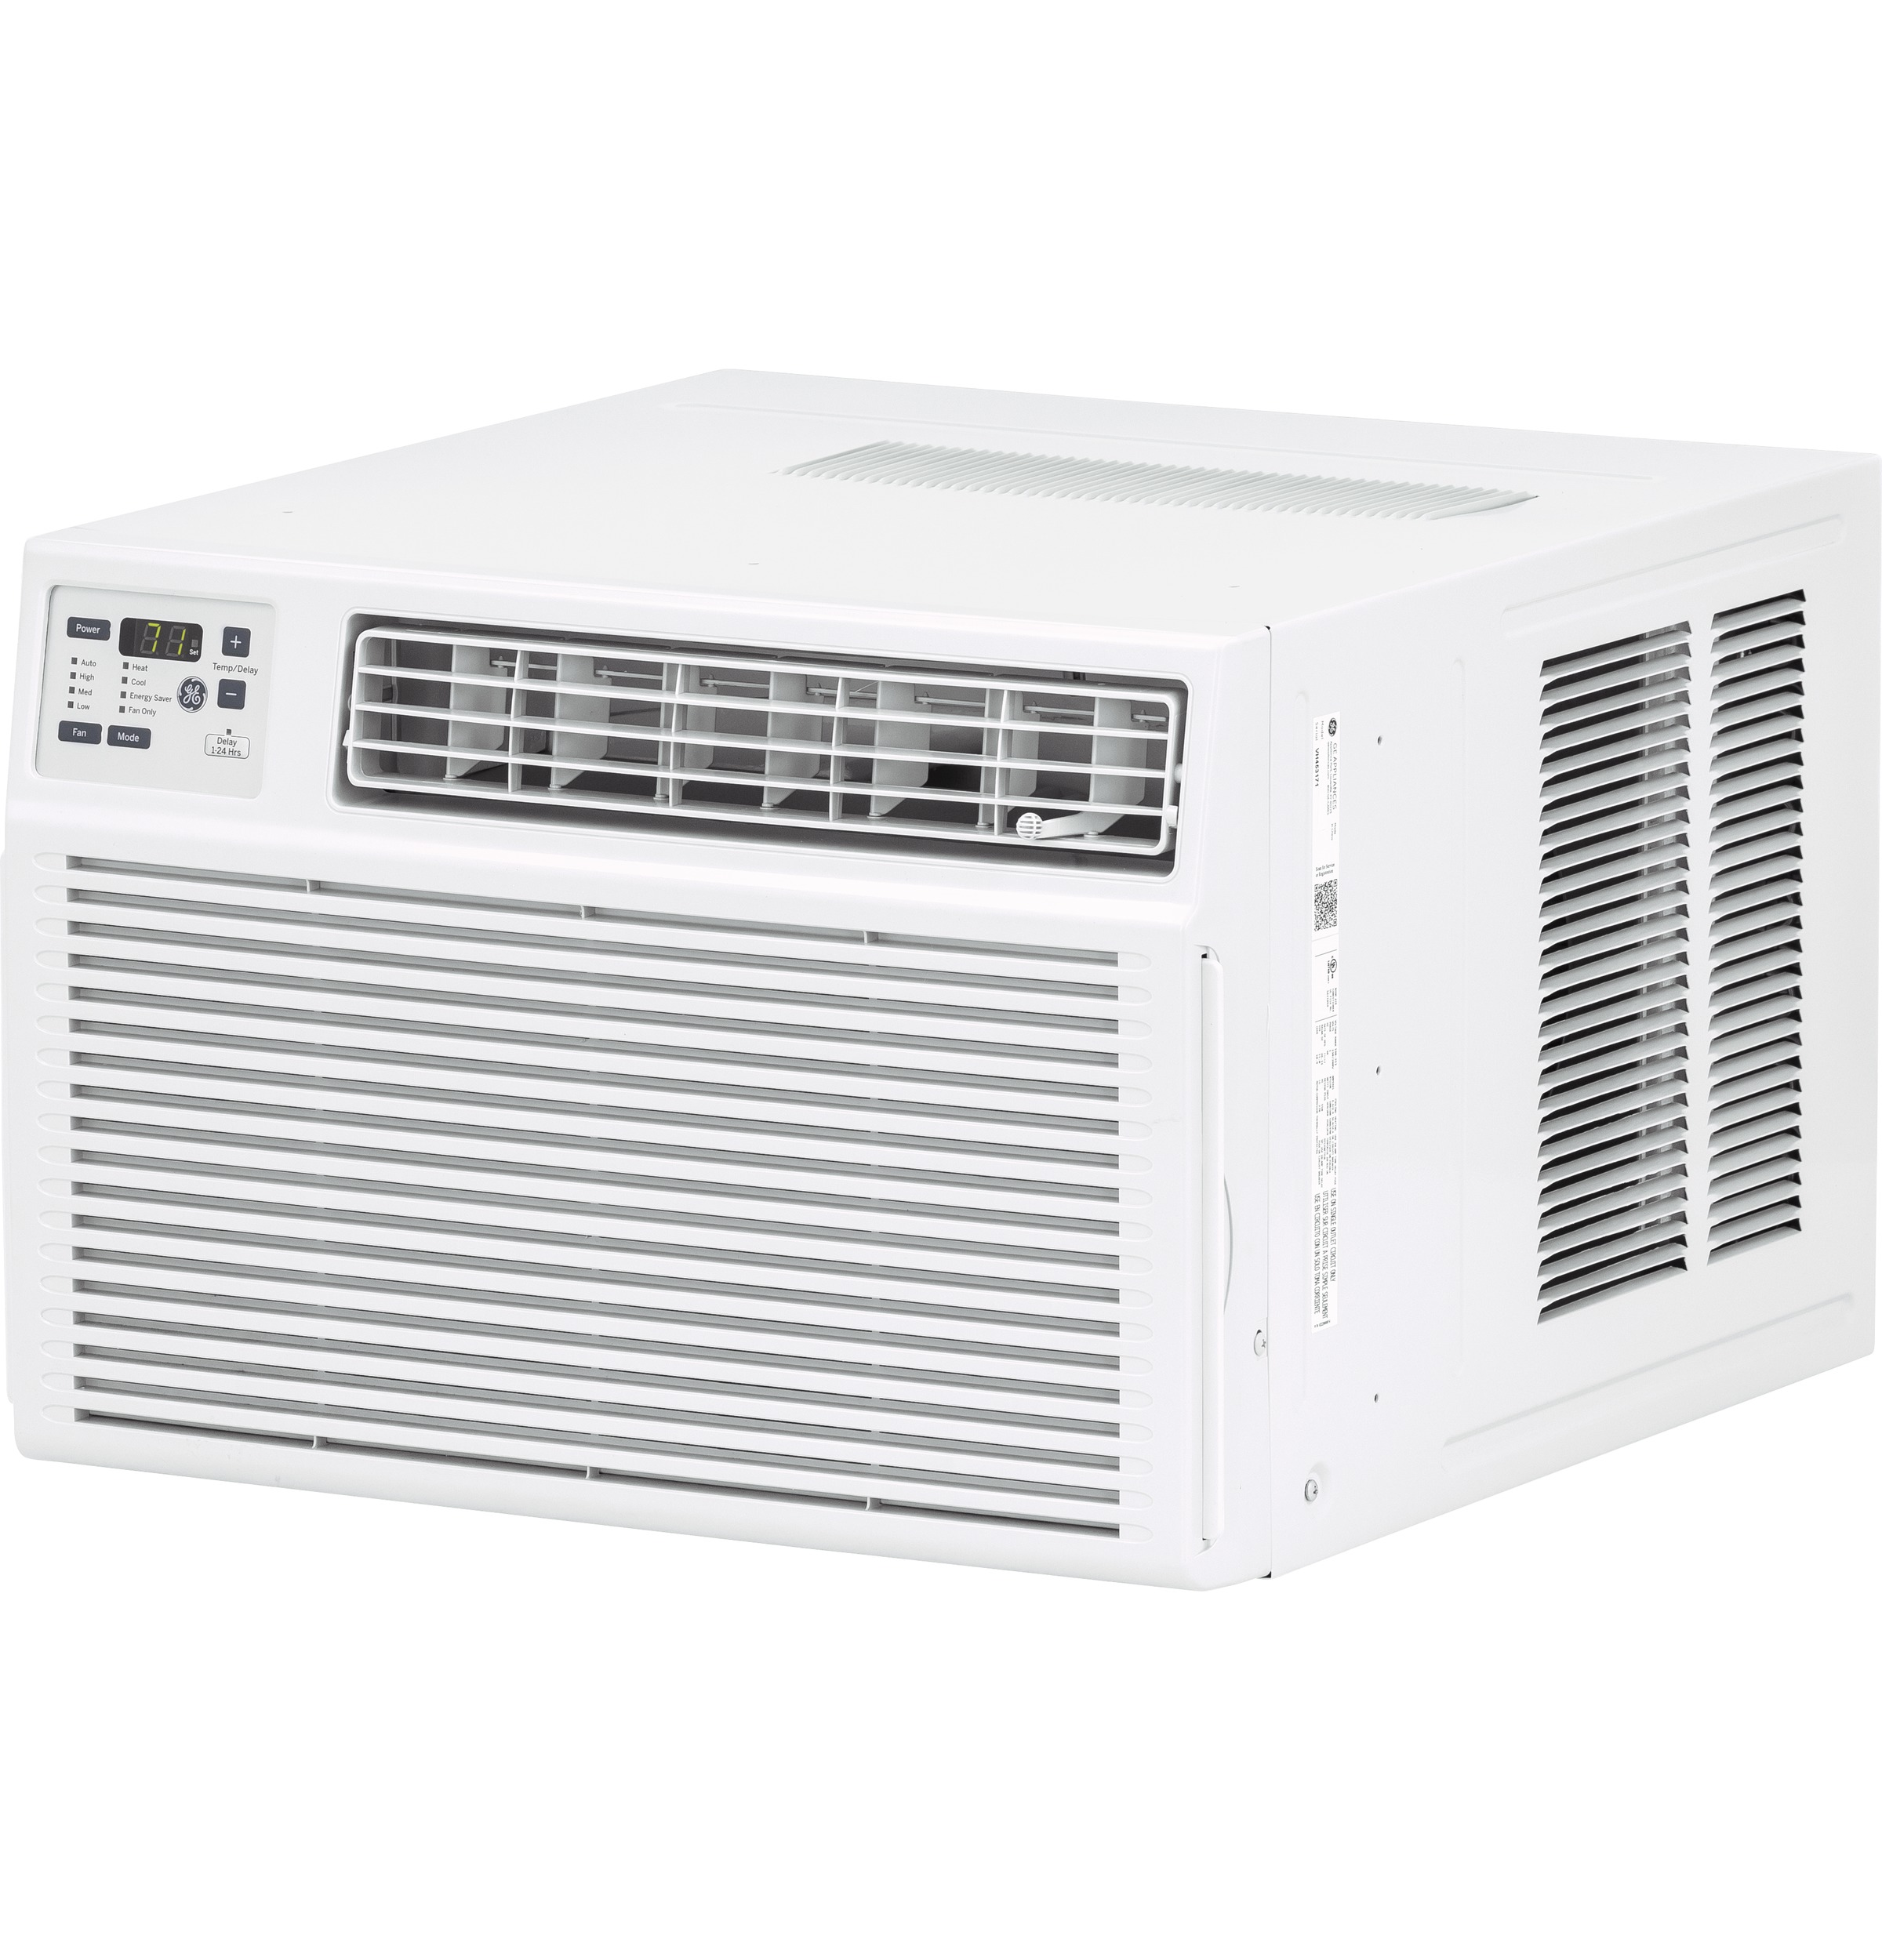 Model: AHE08AZ | GE GE® 115 Volt Electronic Heat/Cool Room Air Conditioner